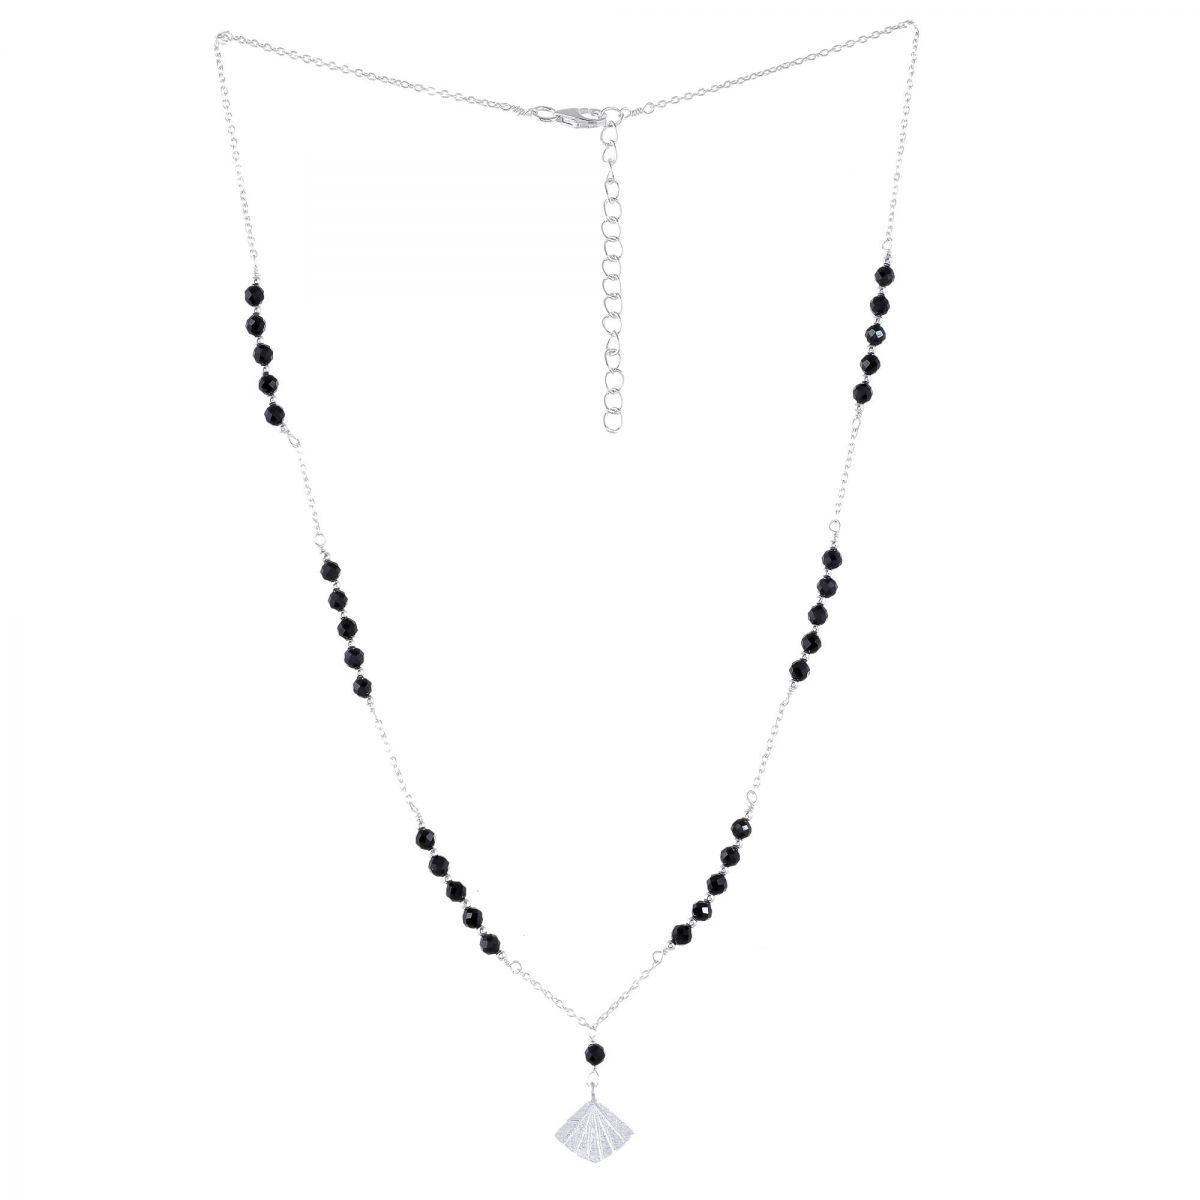 fcollier black agate beads with flabellete